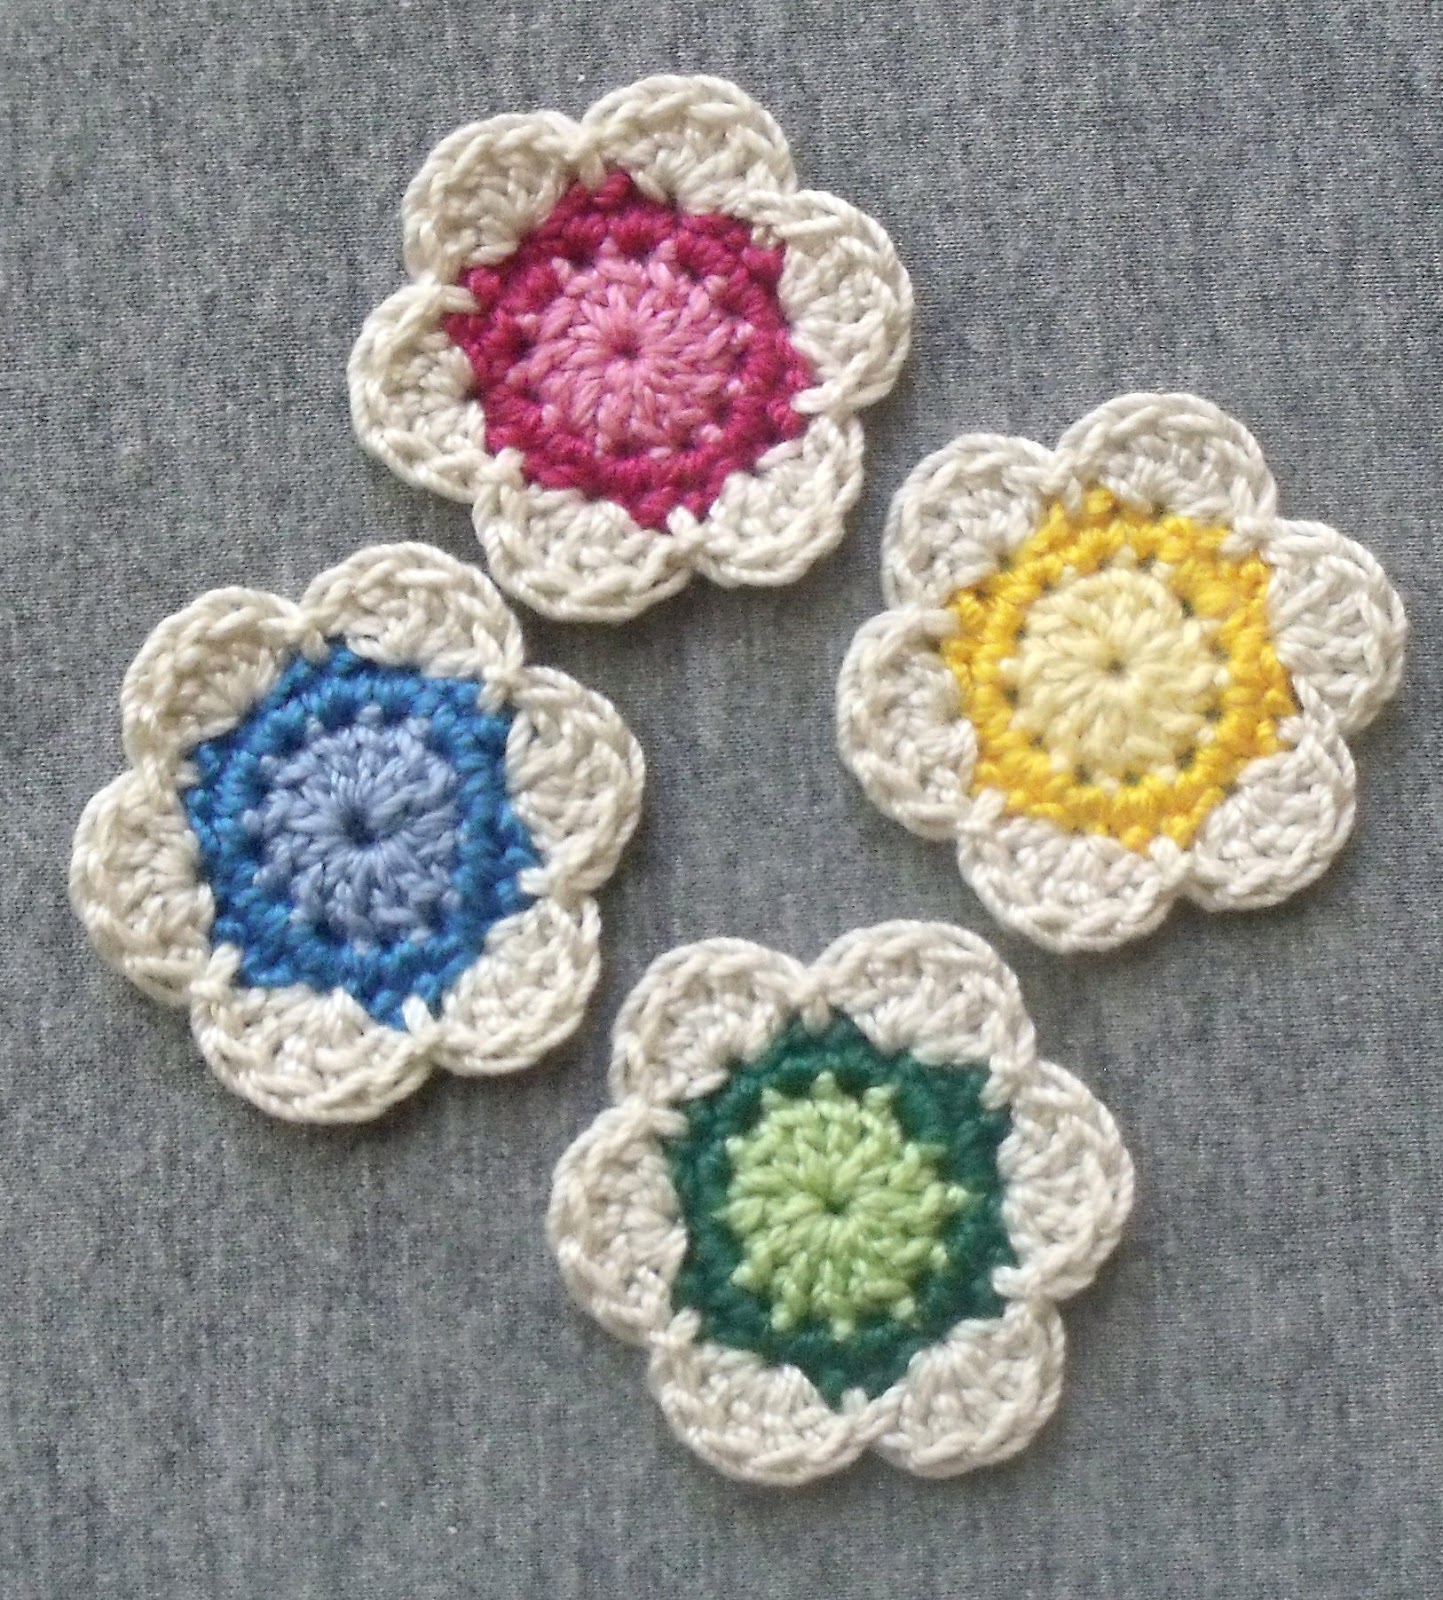 Crochet Flower Pattern Pictures : 10 Adorable Crochet Flowers Beautiful Crochet Stuff